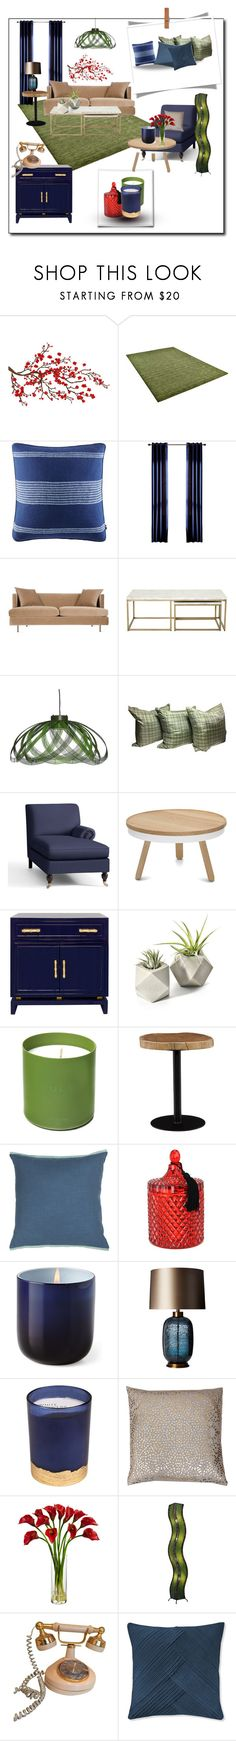 """""""Untitled #1002"""" by confusioninme ❤ liked on Polyvore featuring interior, interiors, interior design, home, home decor, interior decorating, Brewster Home Fashions, Tommy Hilfiger, Pottery Barn and Culti"""